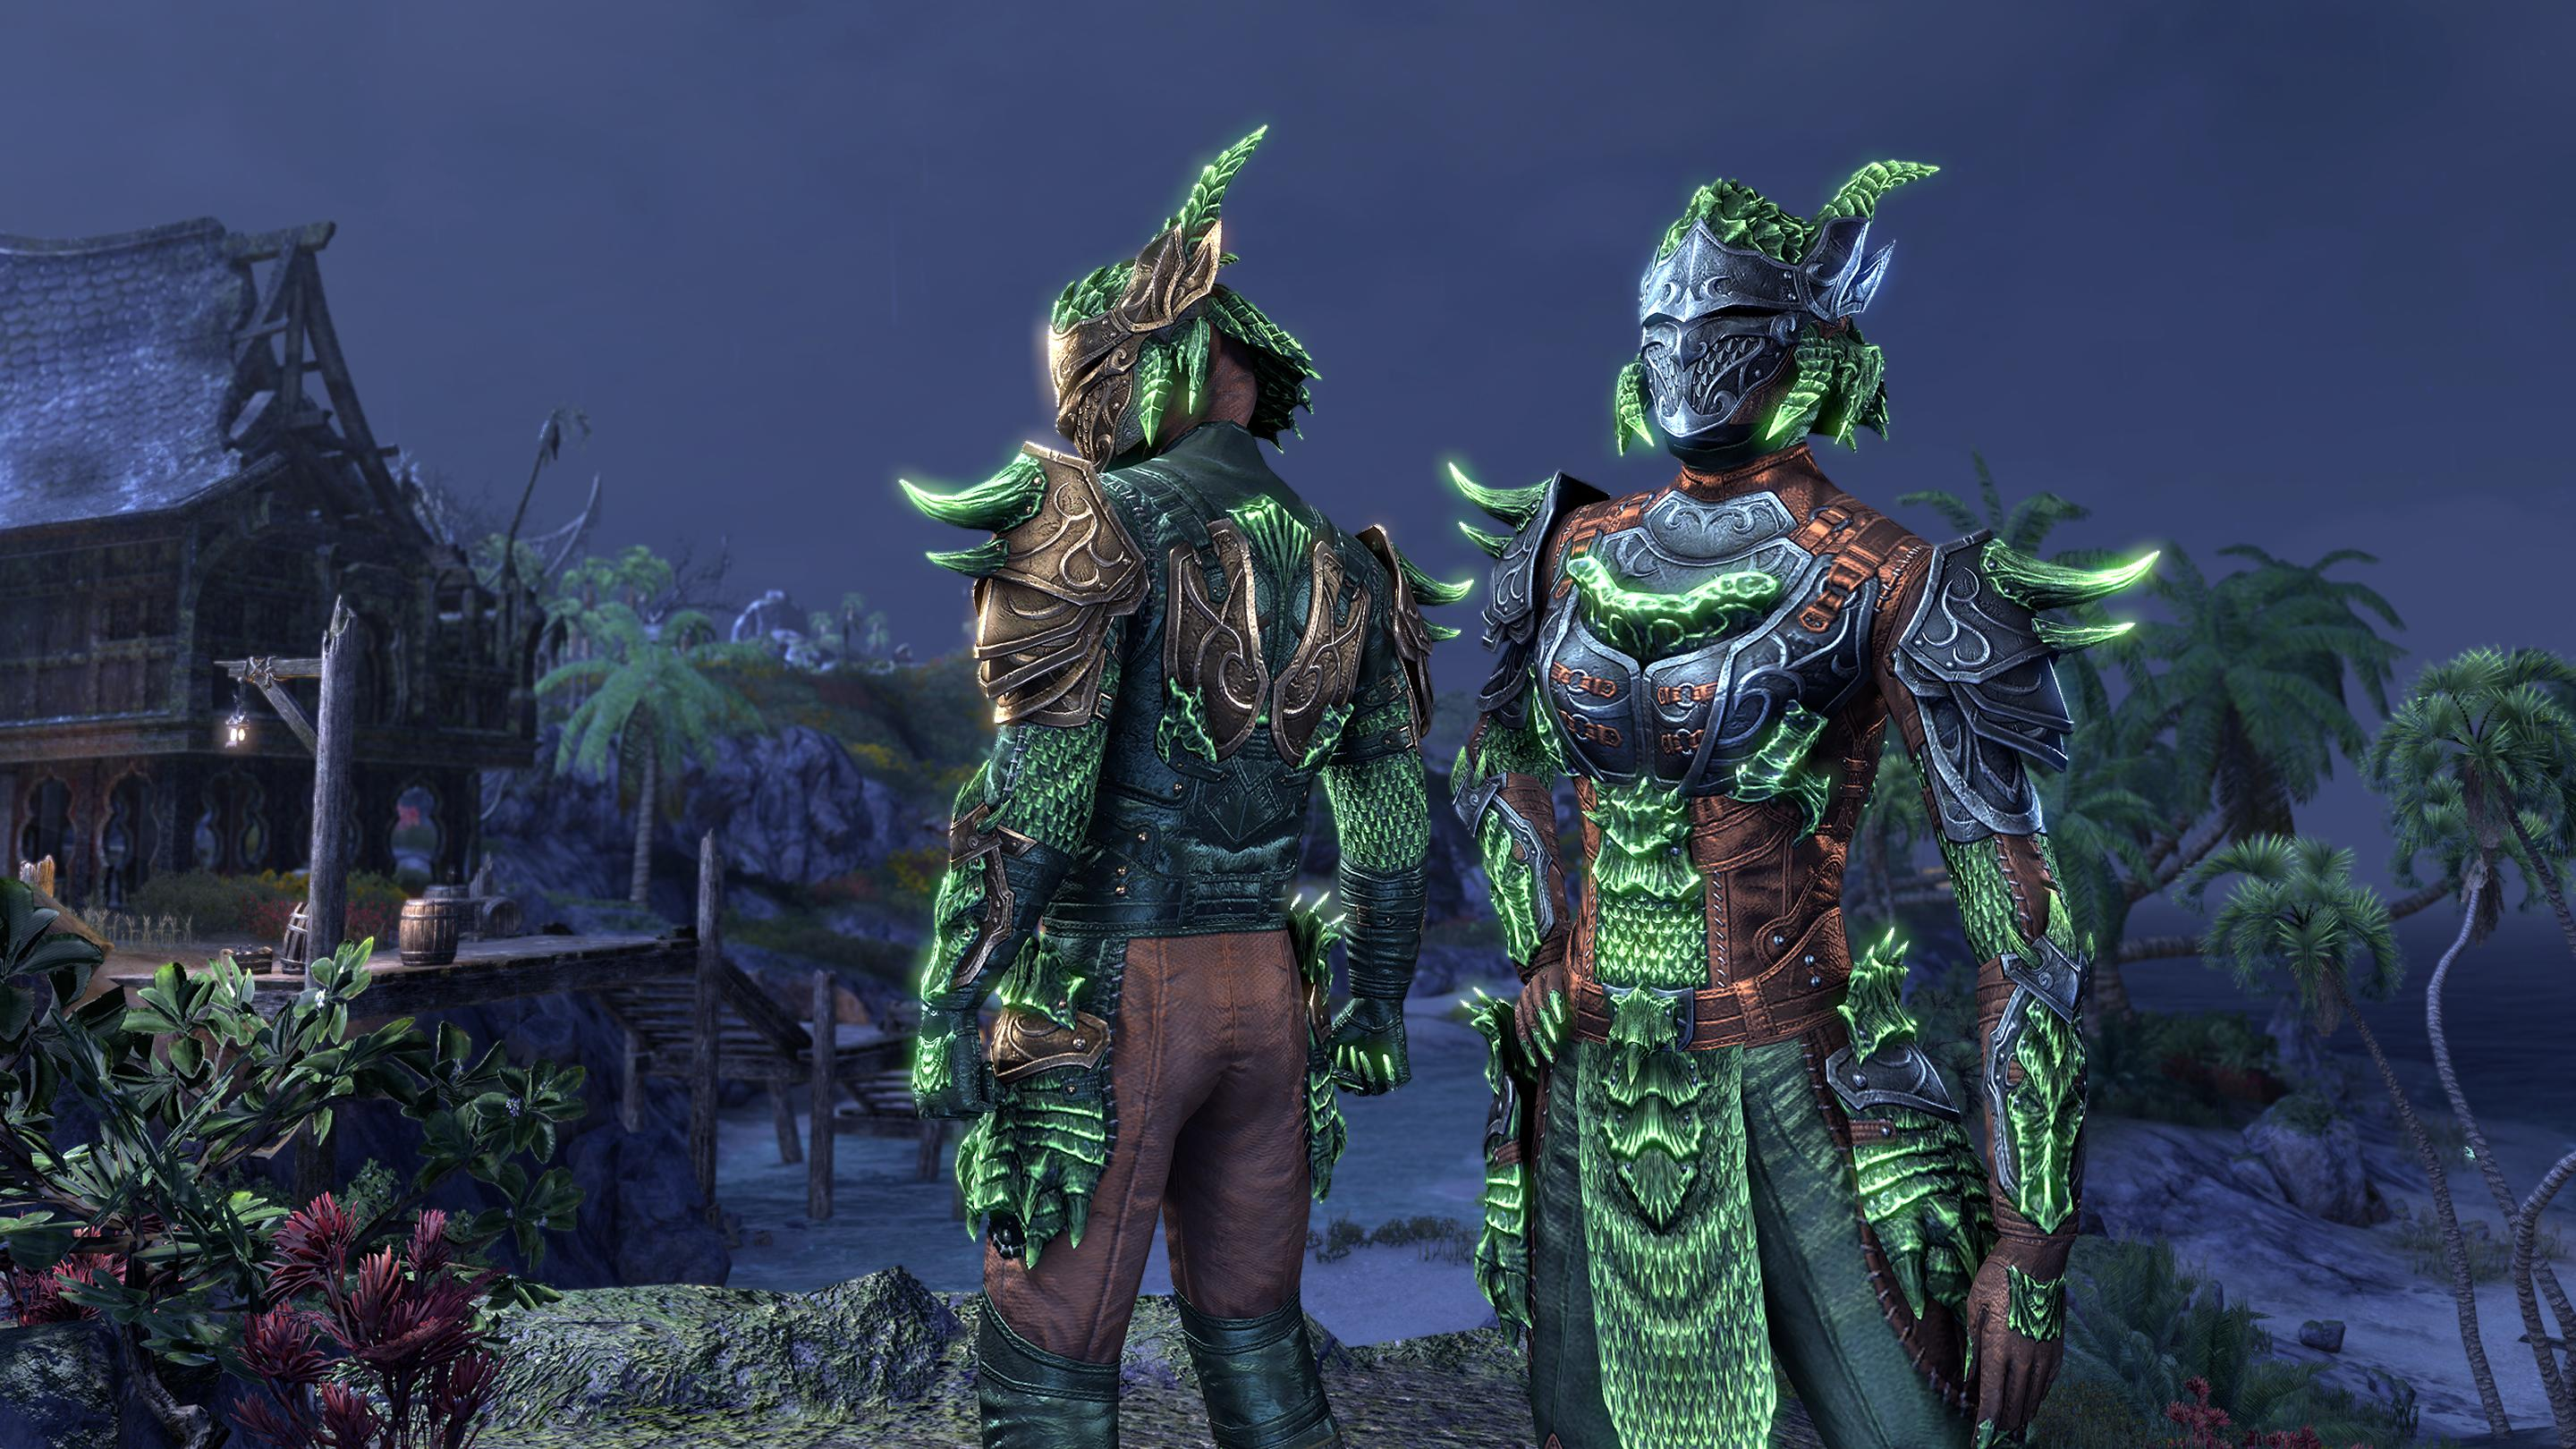 Legendary Dragon Armor Pack Crown Store The Elder Scrolls Online Part of the ancient dragonguard set. legendary dragon armor pack crown